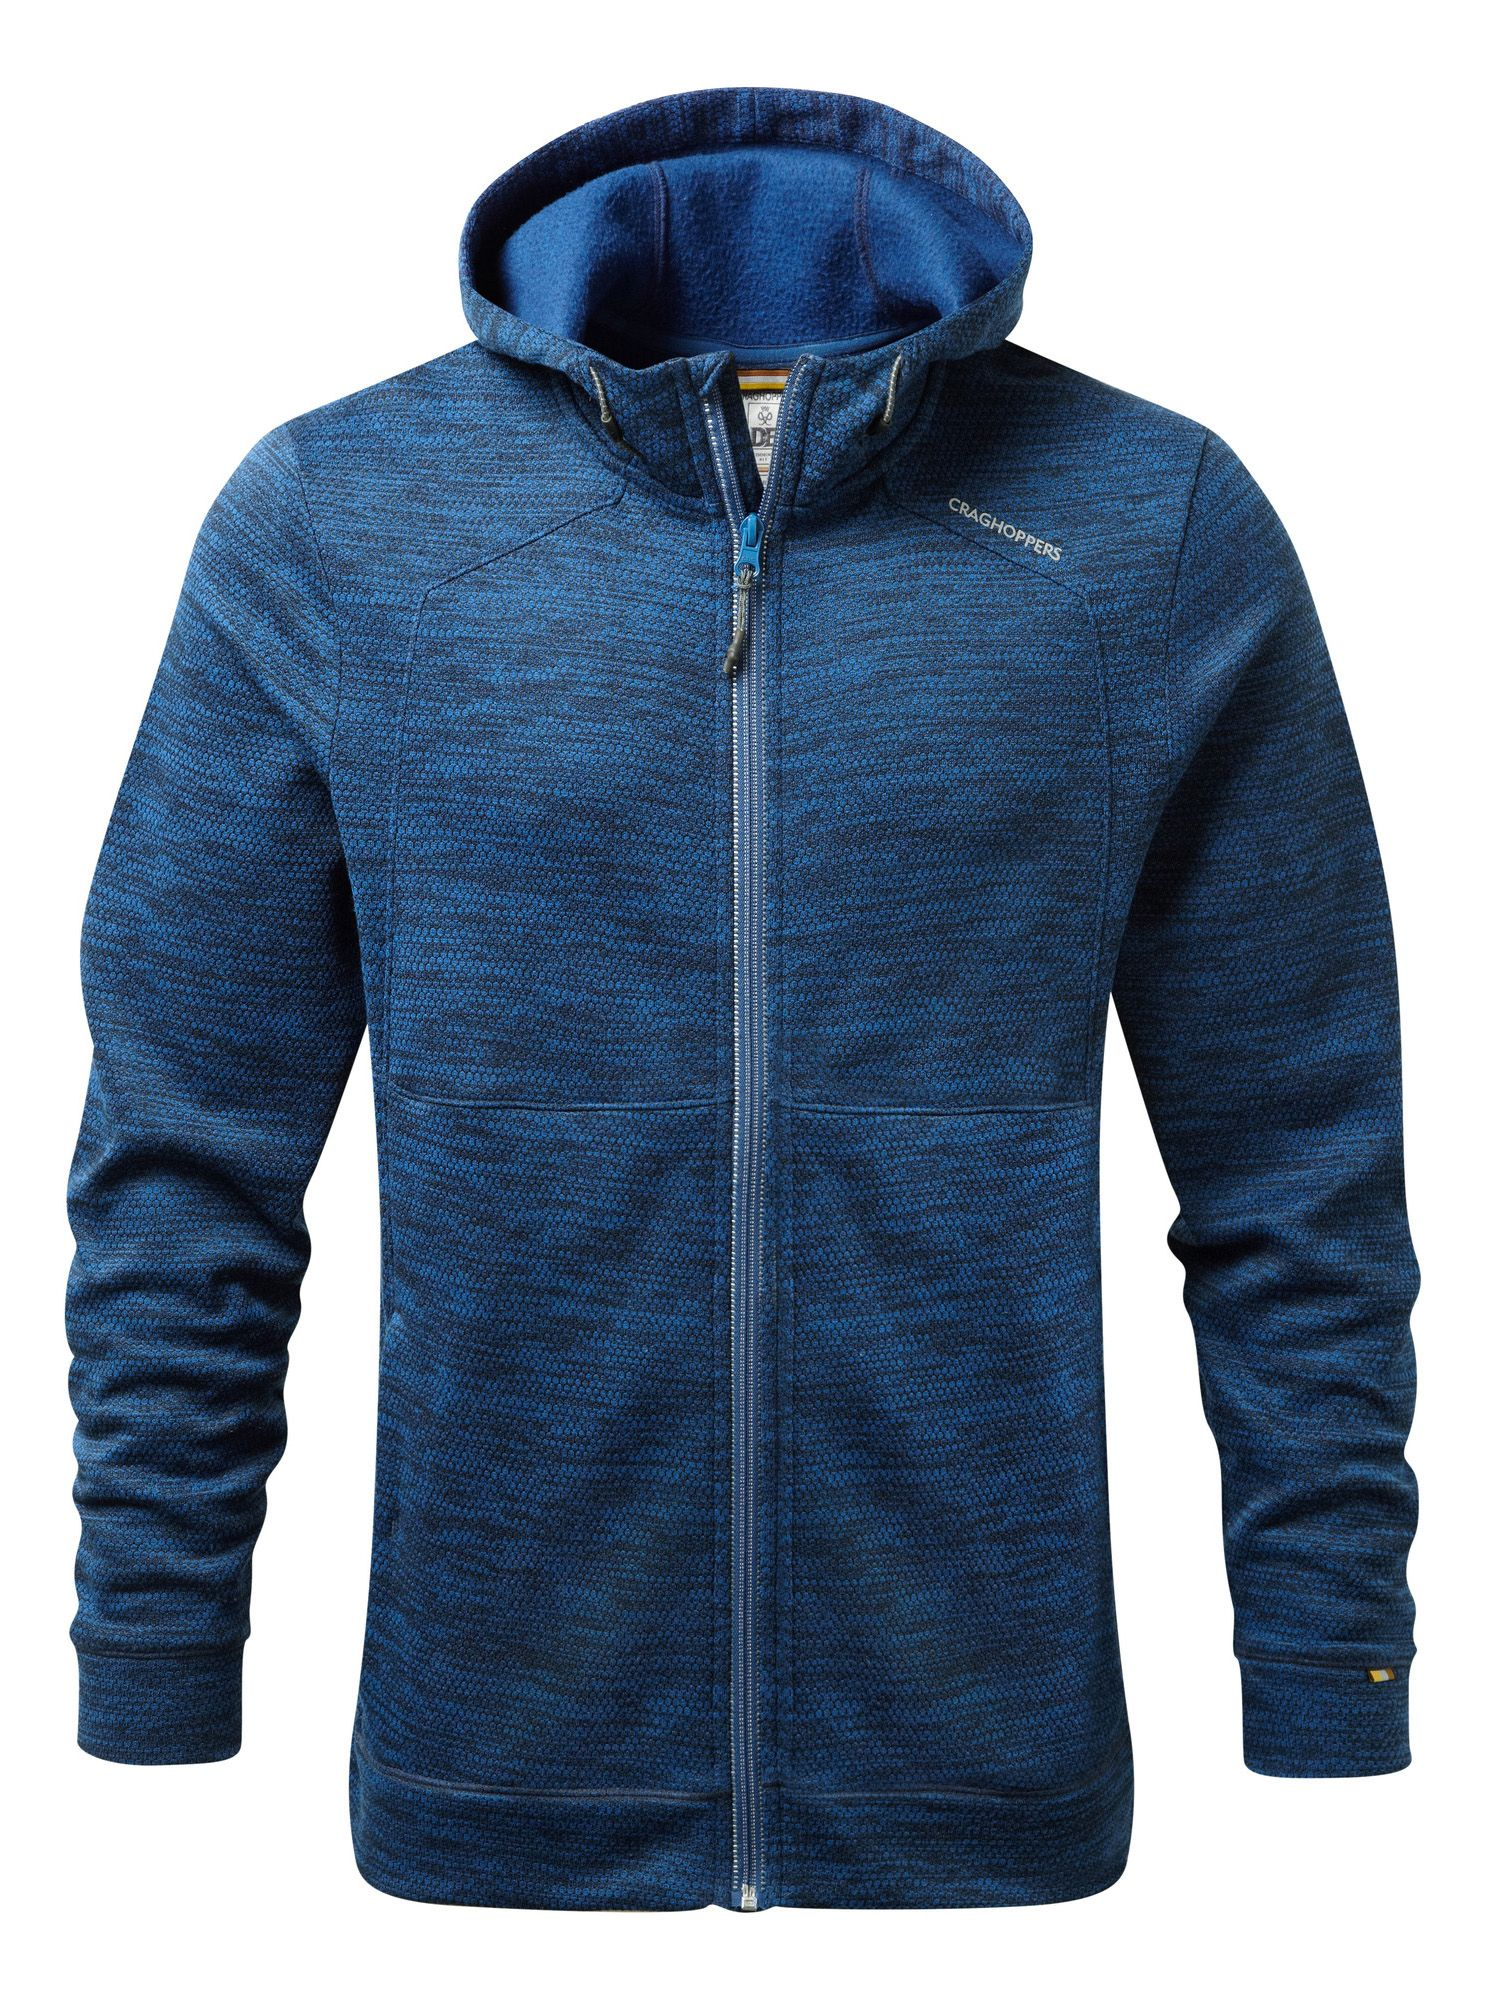 Men's Craghoppers Vector Lightweight Hooded Jacket, Deep Blue